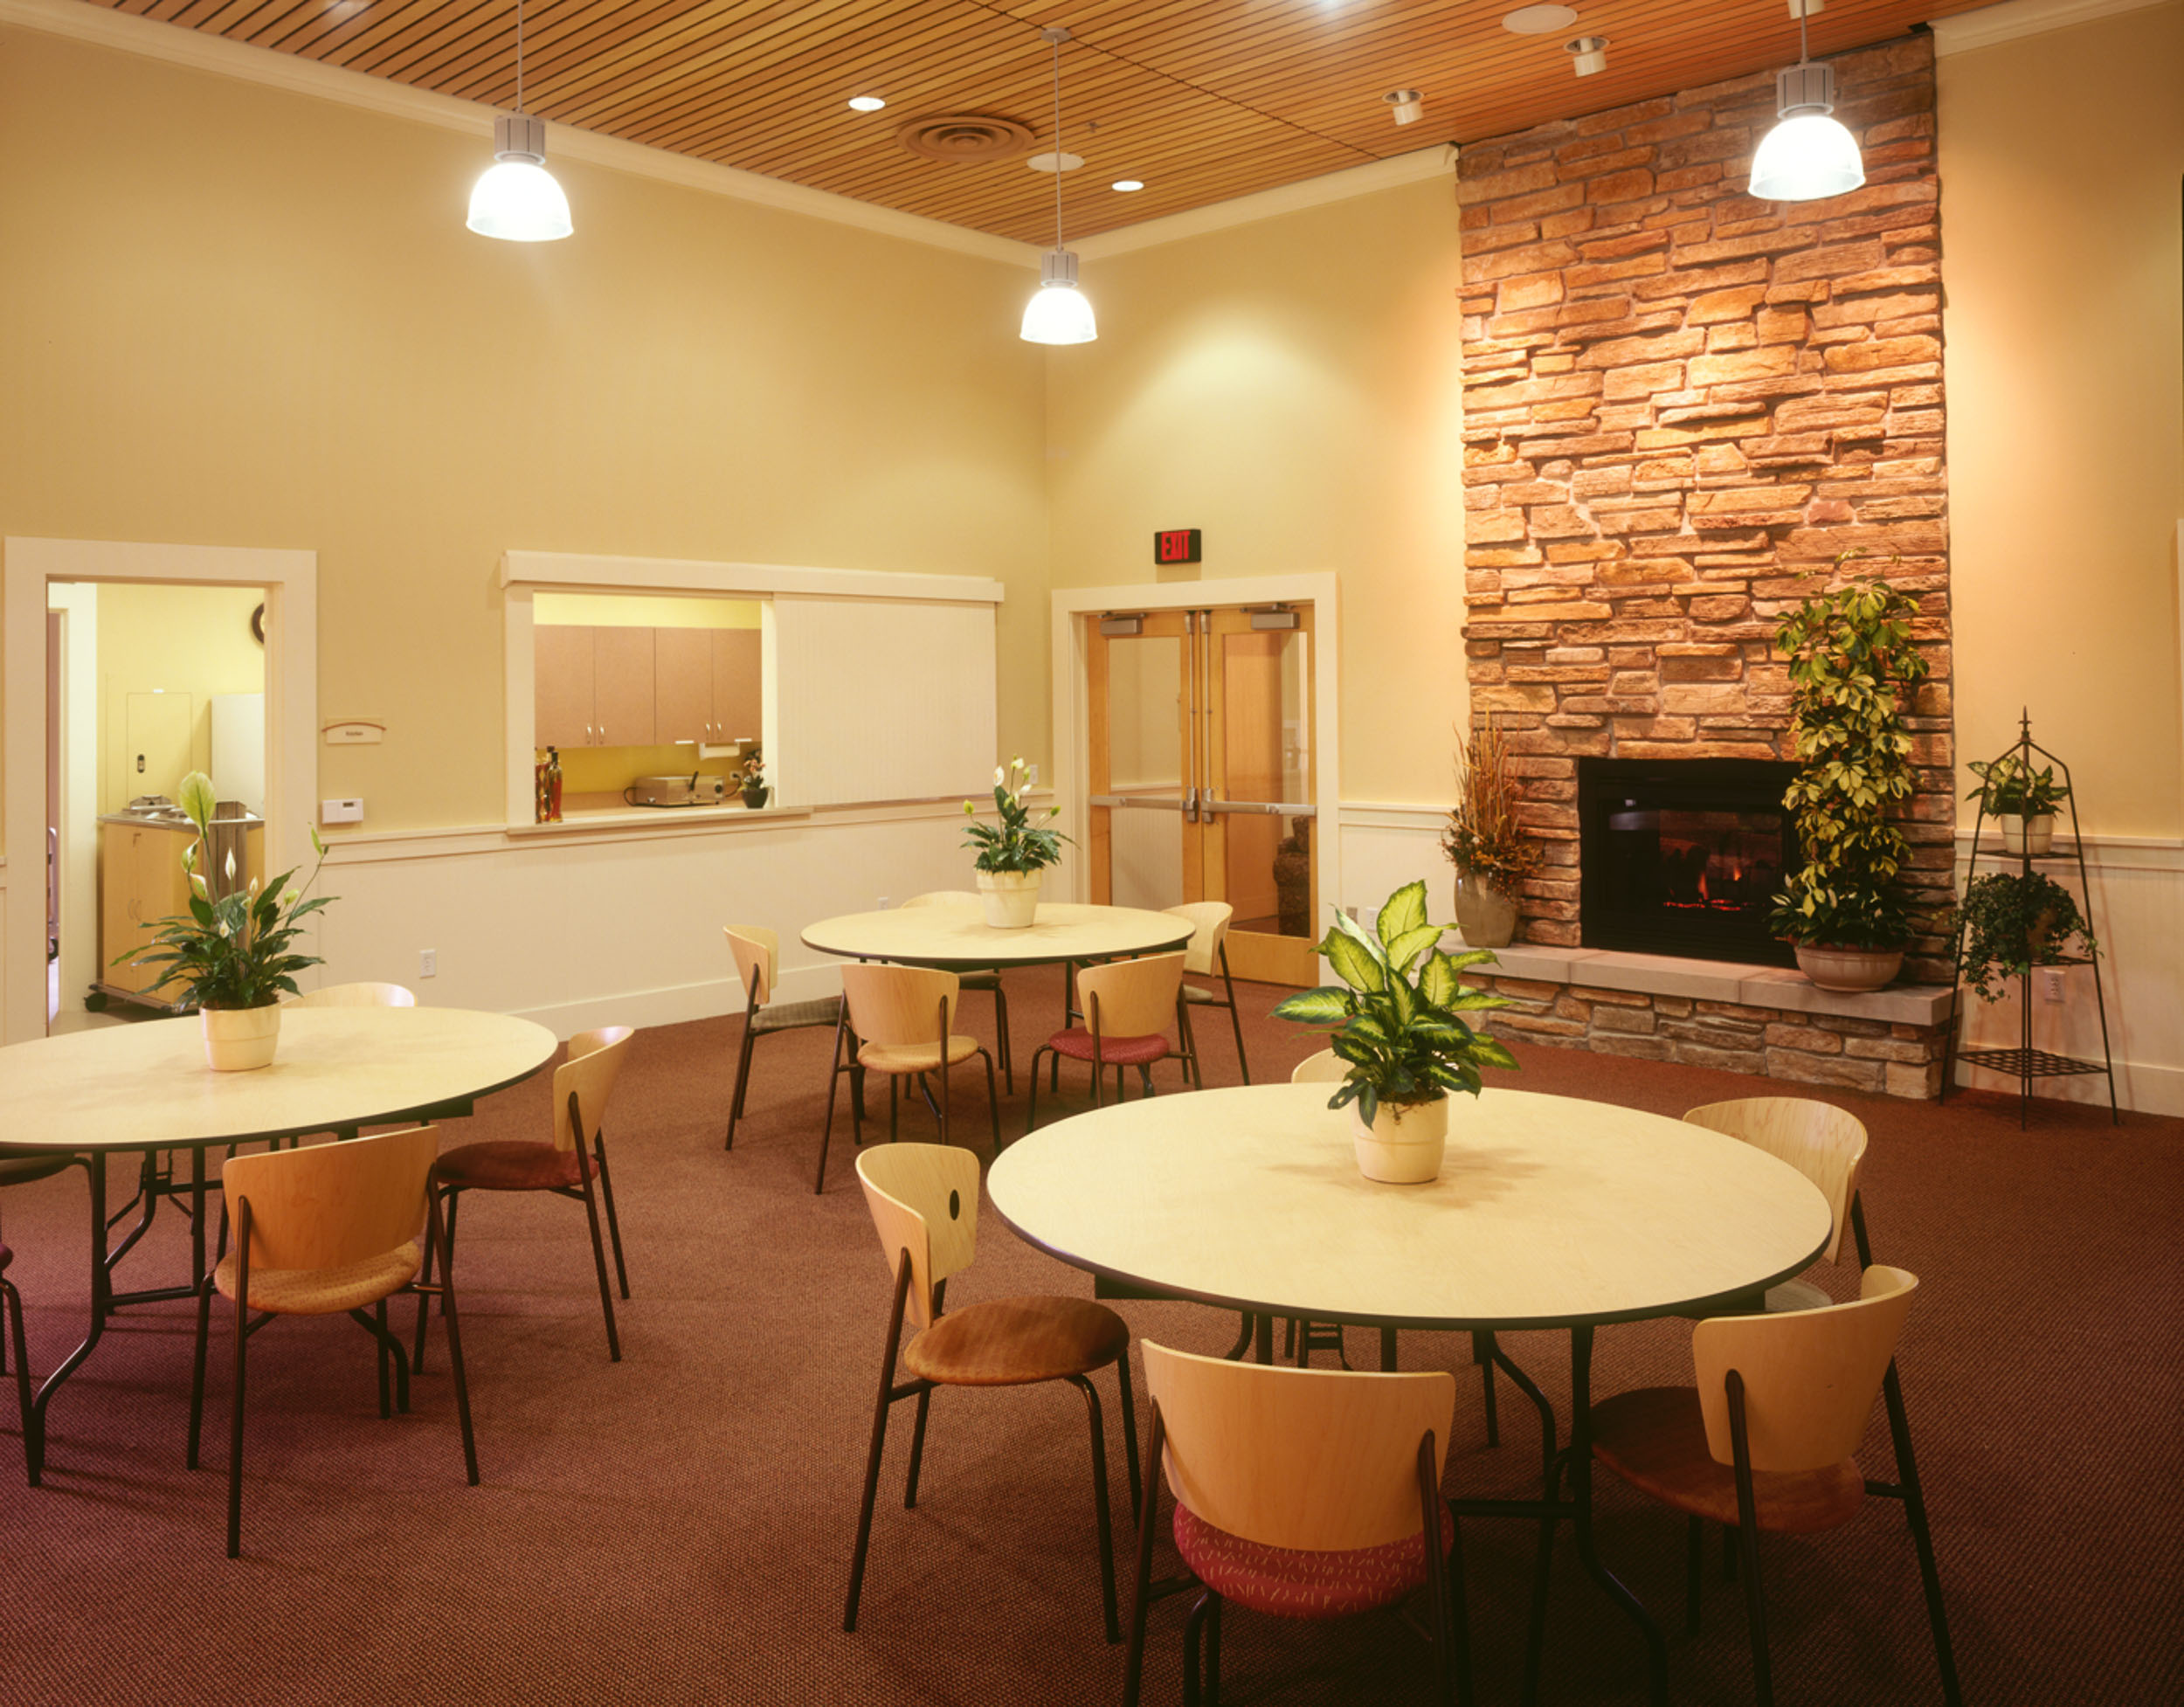 Community Center Meeting Room Image